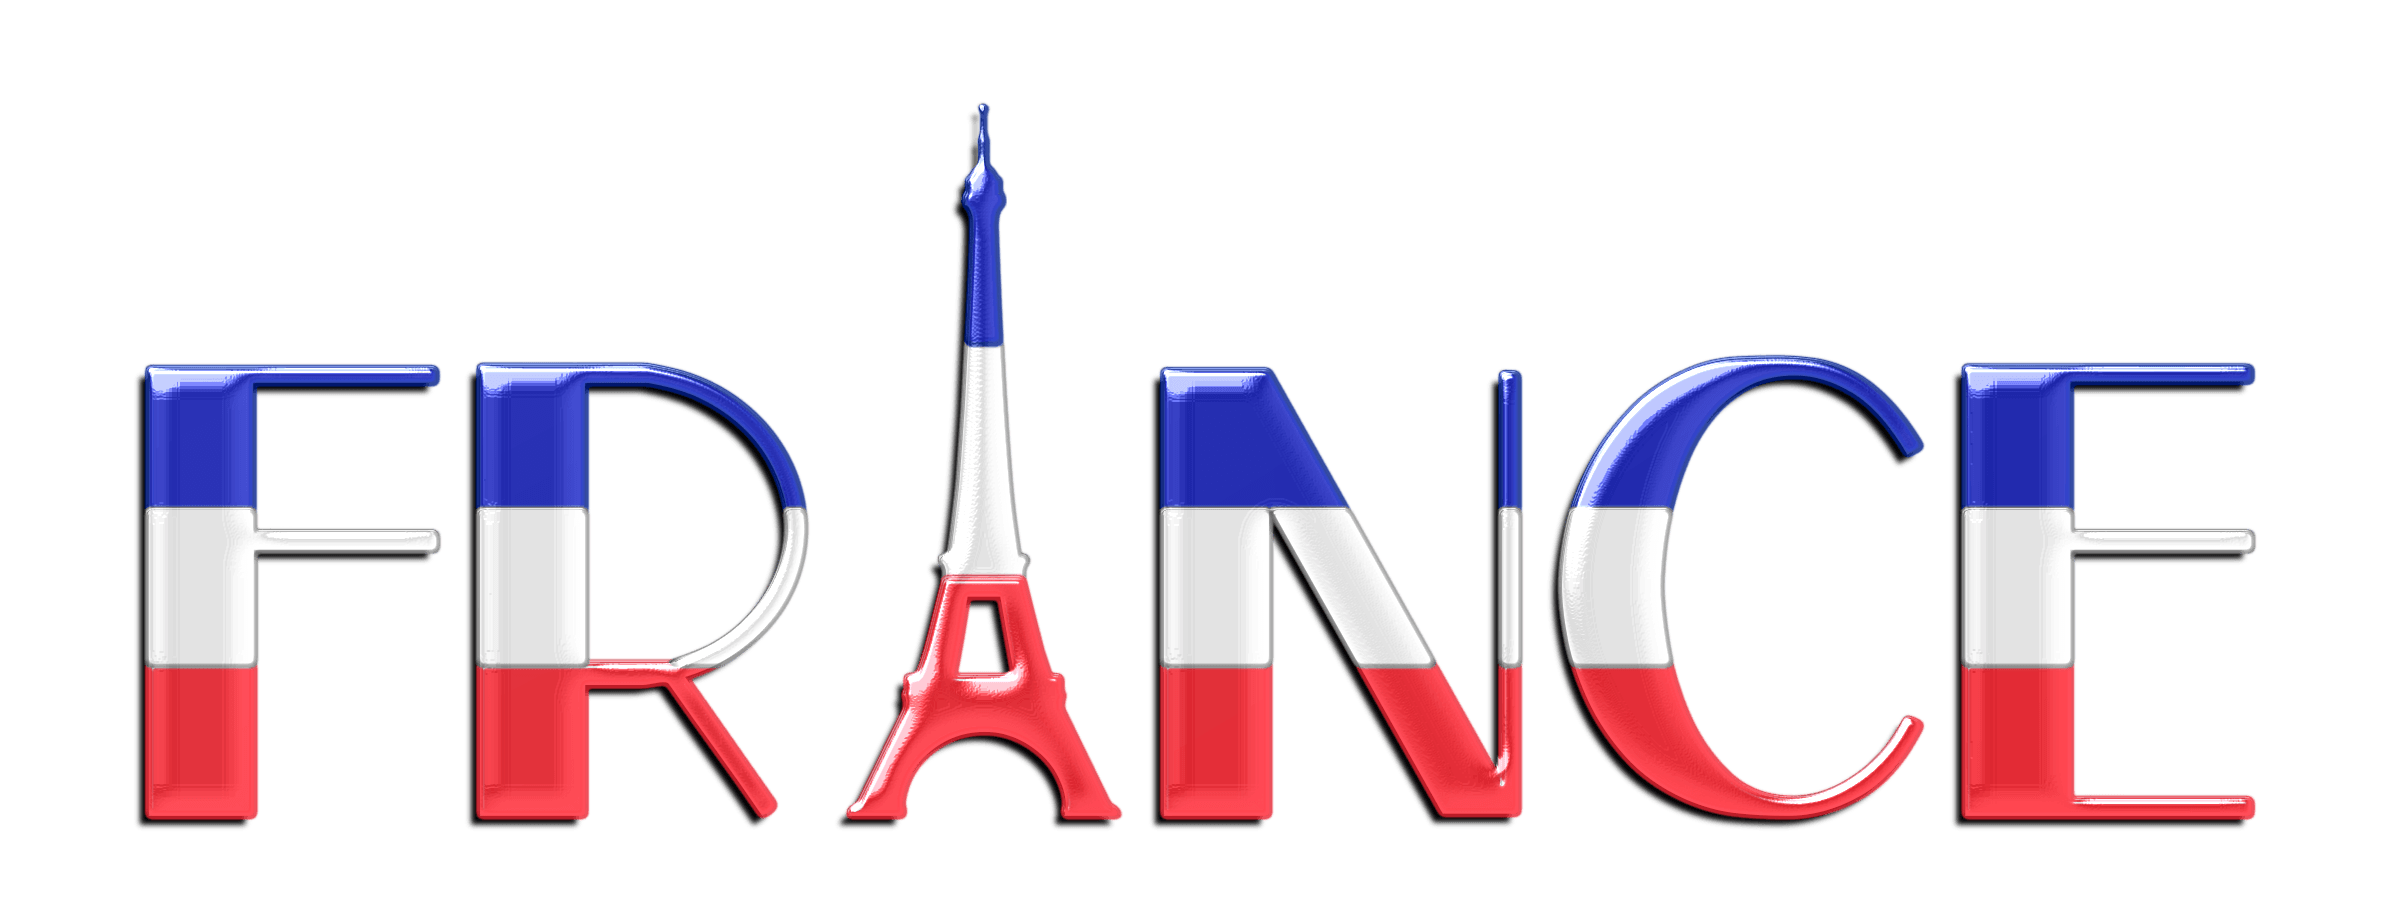 Free cliparts download clip. France clipart culture french